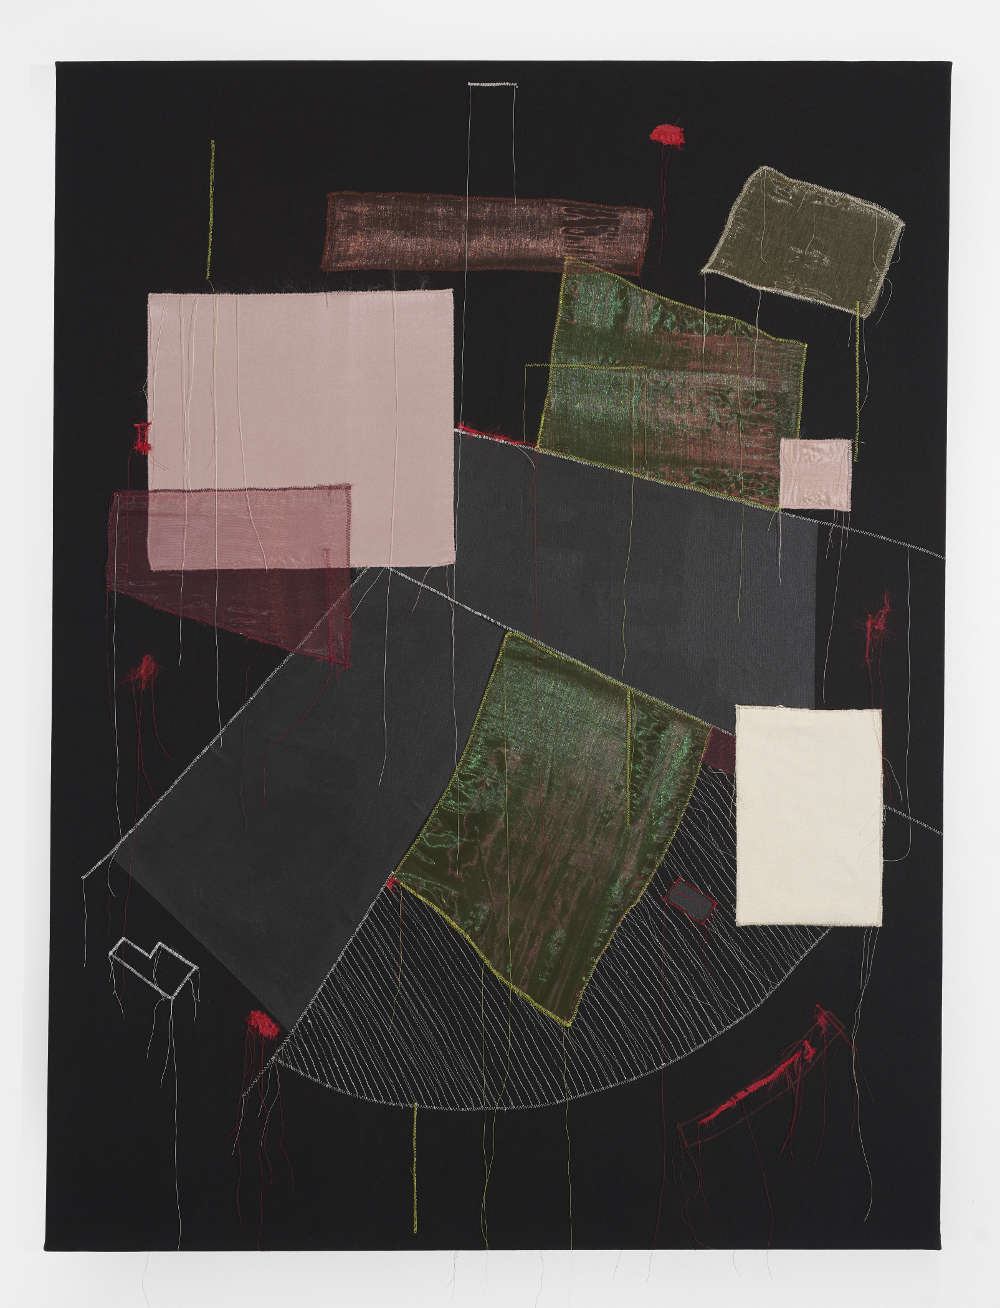 Christine Gedeon, The Villa Rose, 2018. Thread, fabric and paint on black canvas 56 x 42 inches 142.2 x 106.7 cm